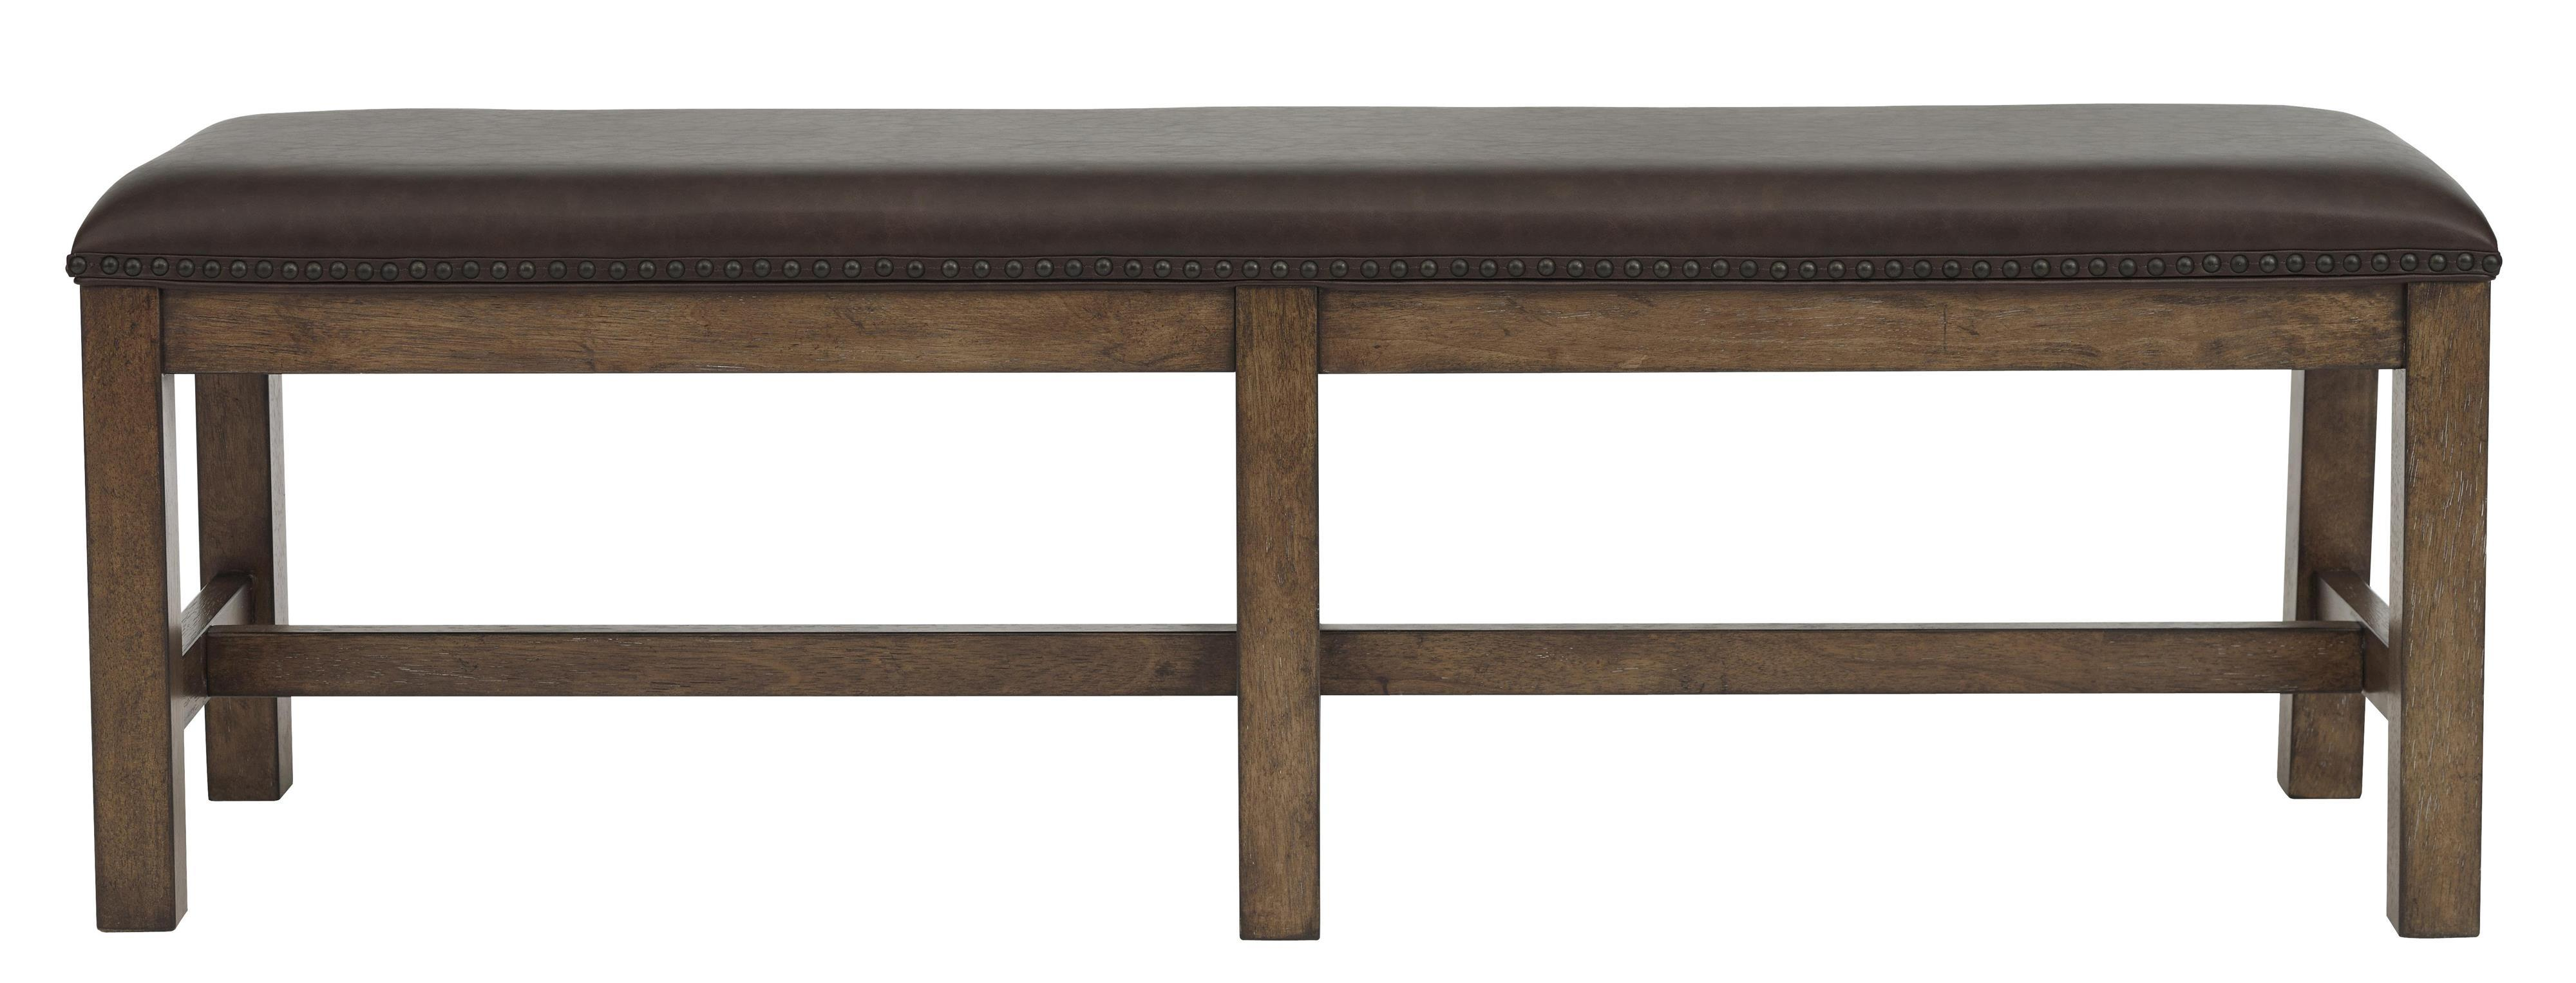 Belfort Select Virginia Mill Upholstered Dining Bench - Item Number: 8854-380